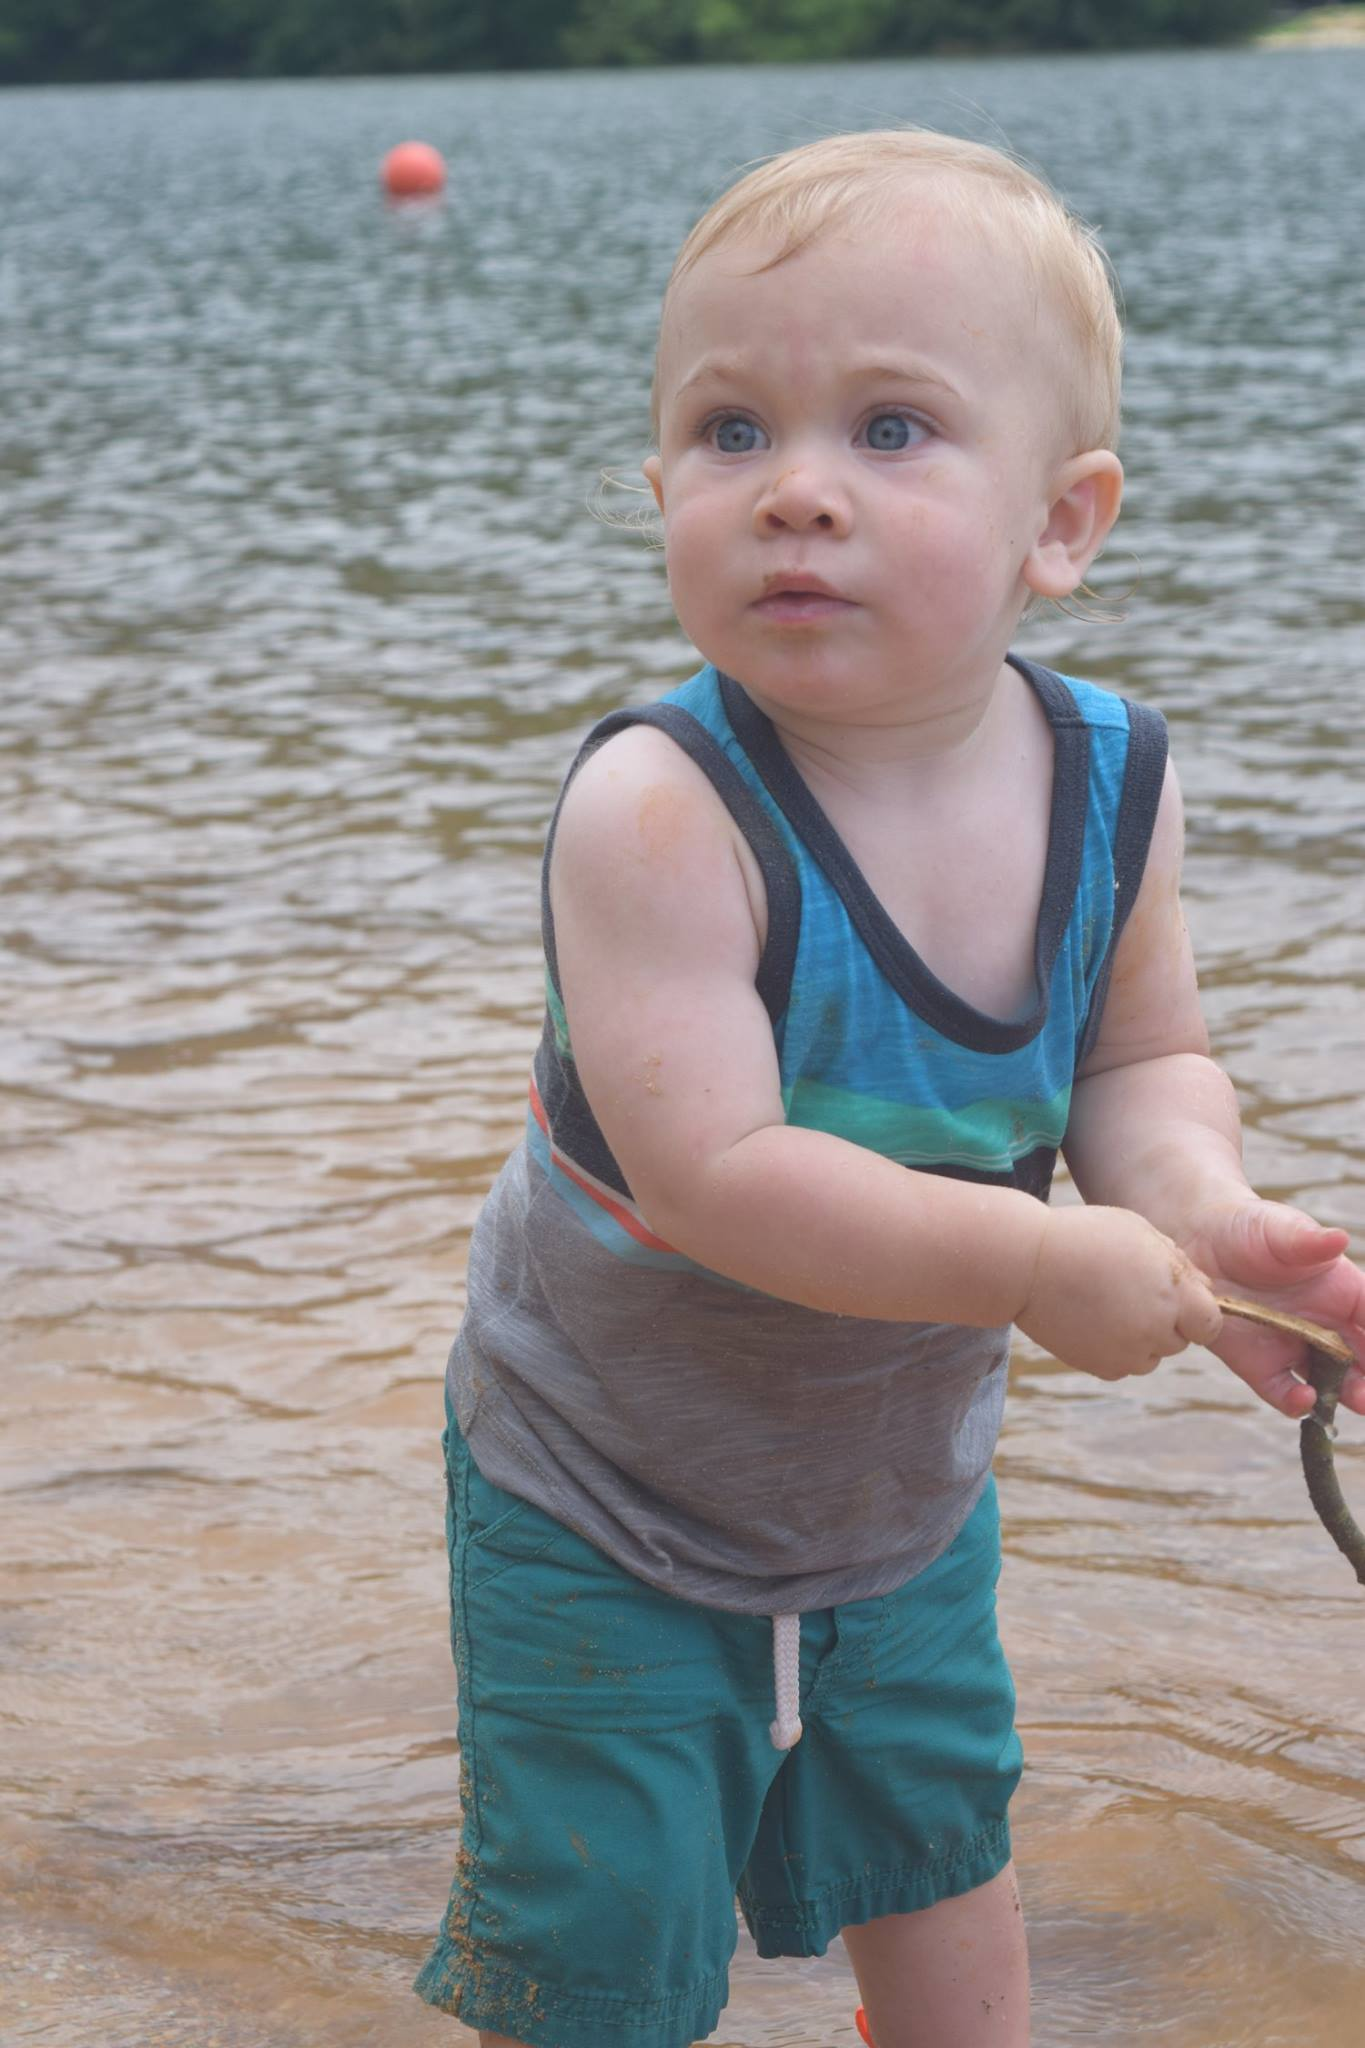 The Grand Seeley Adventure, Family Vacation, hike and lake day, cherokee national forest